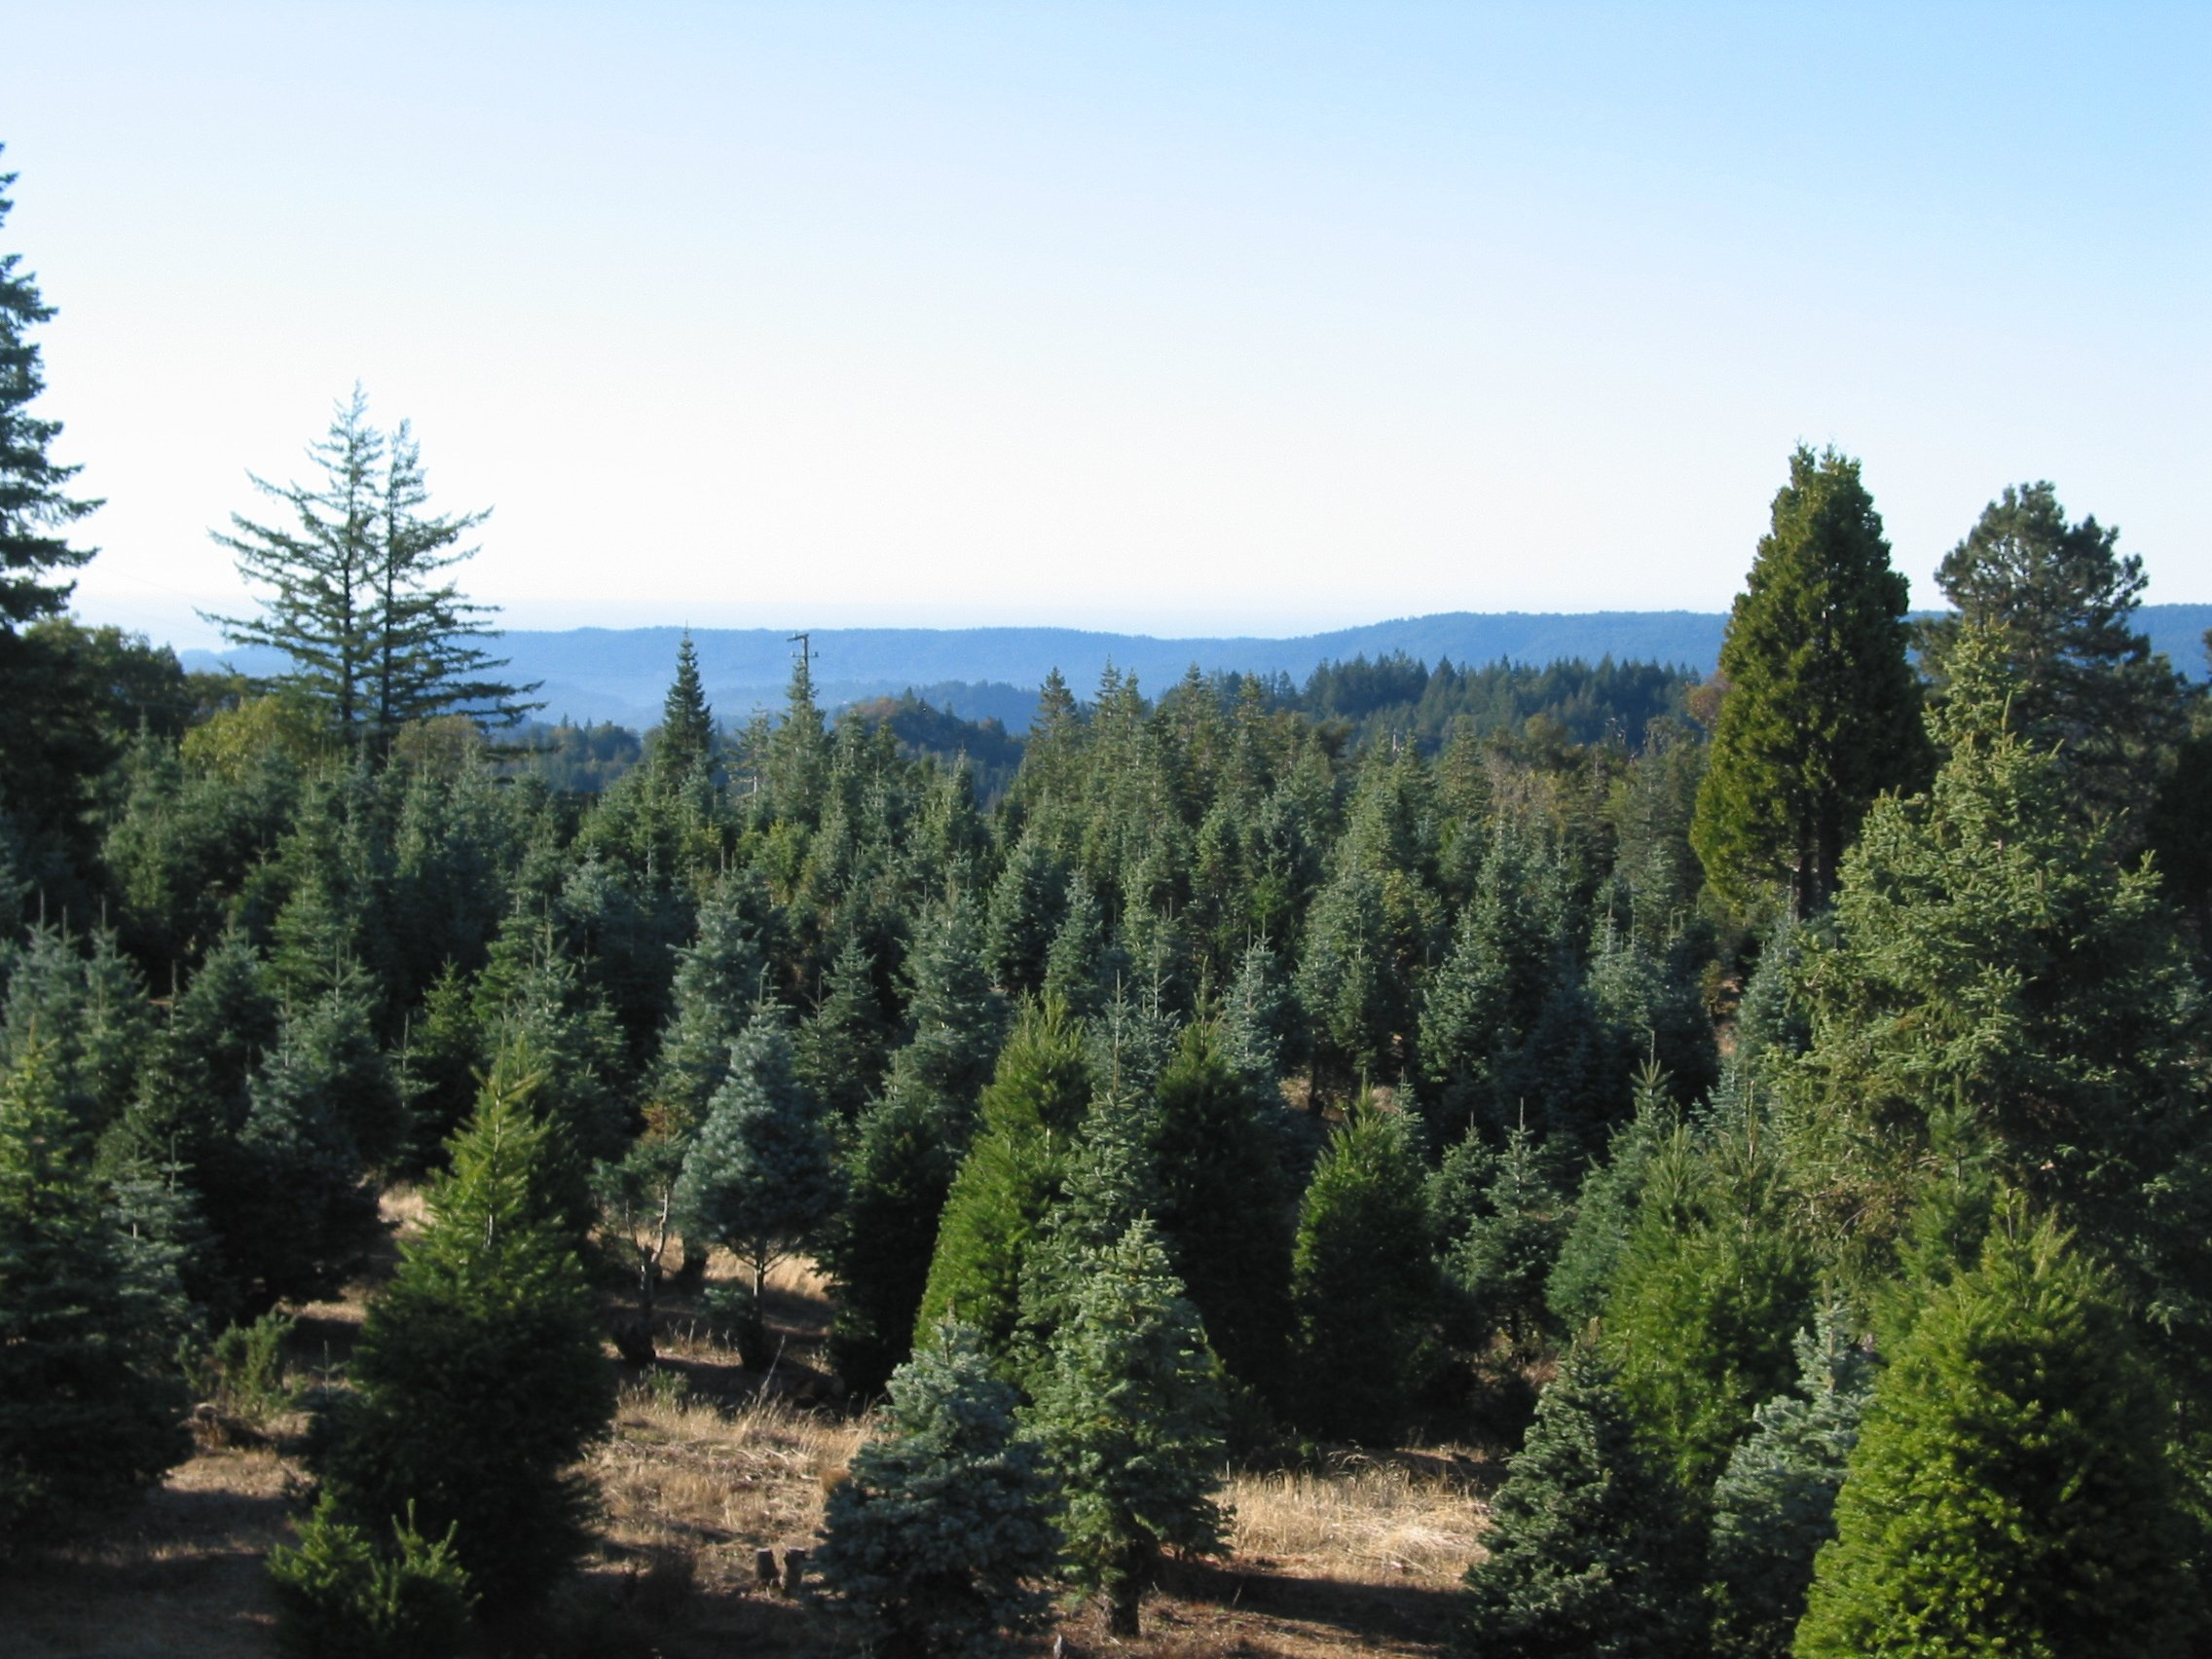 Four Winds Christmas Trees - Home